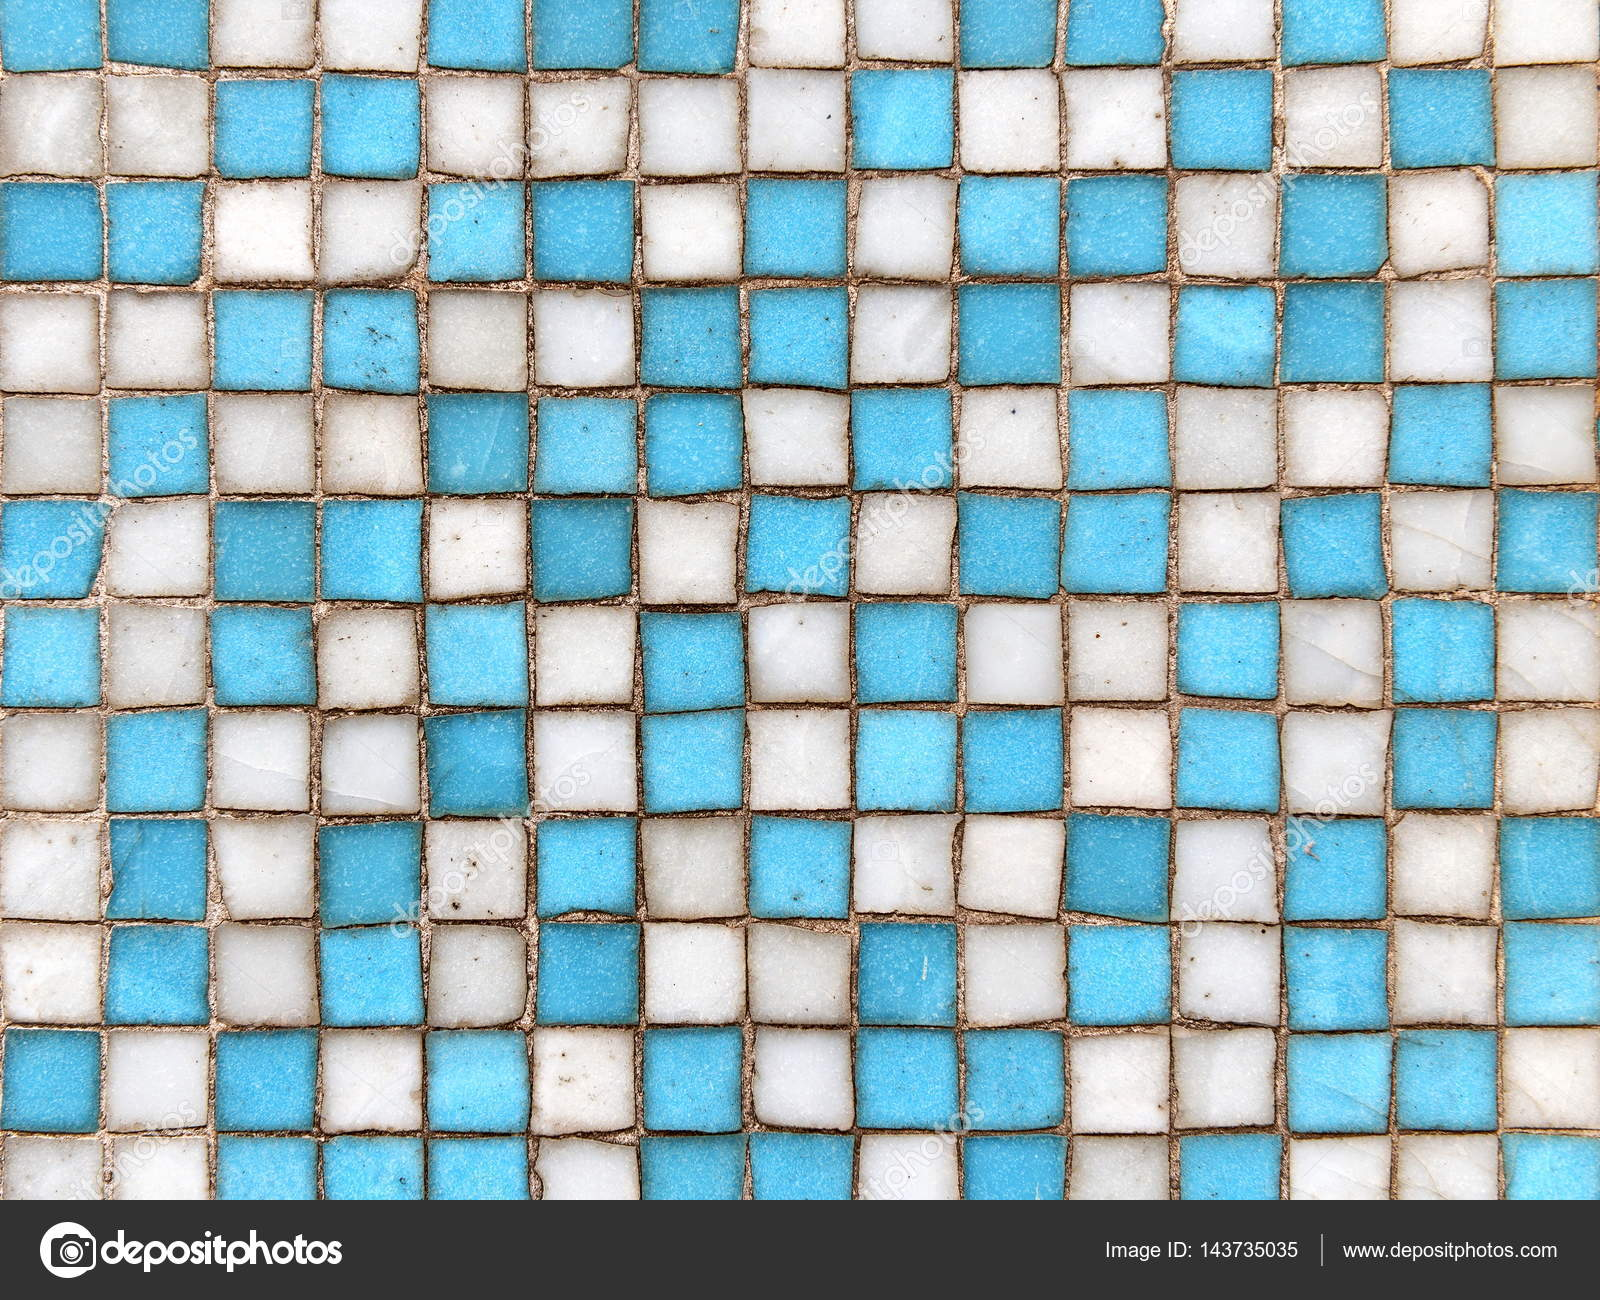 Weathered Square Ceramic Tiles — Stock Photo © 1000Words #143735035